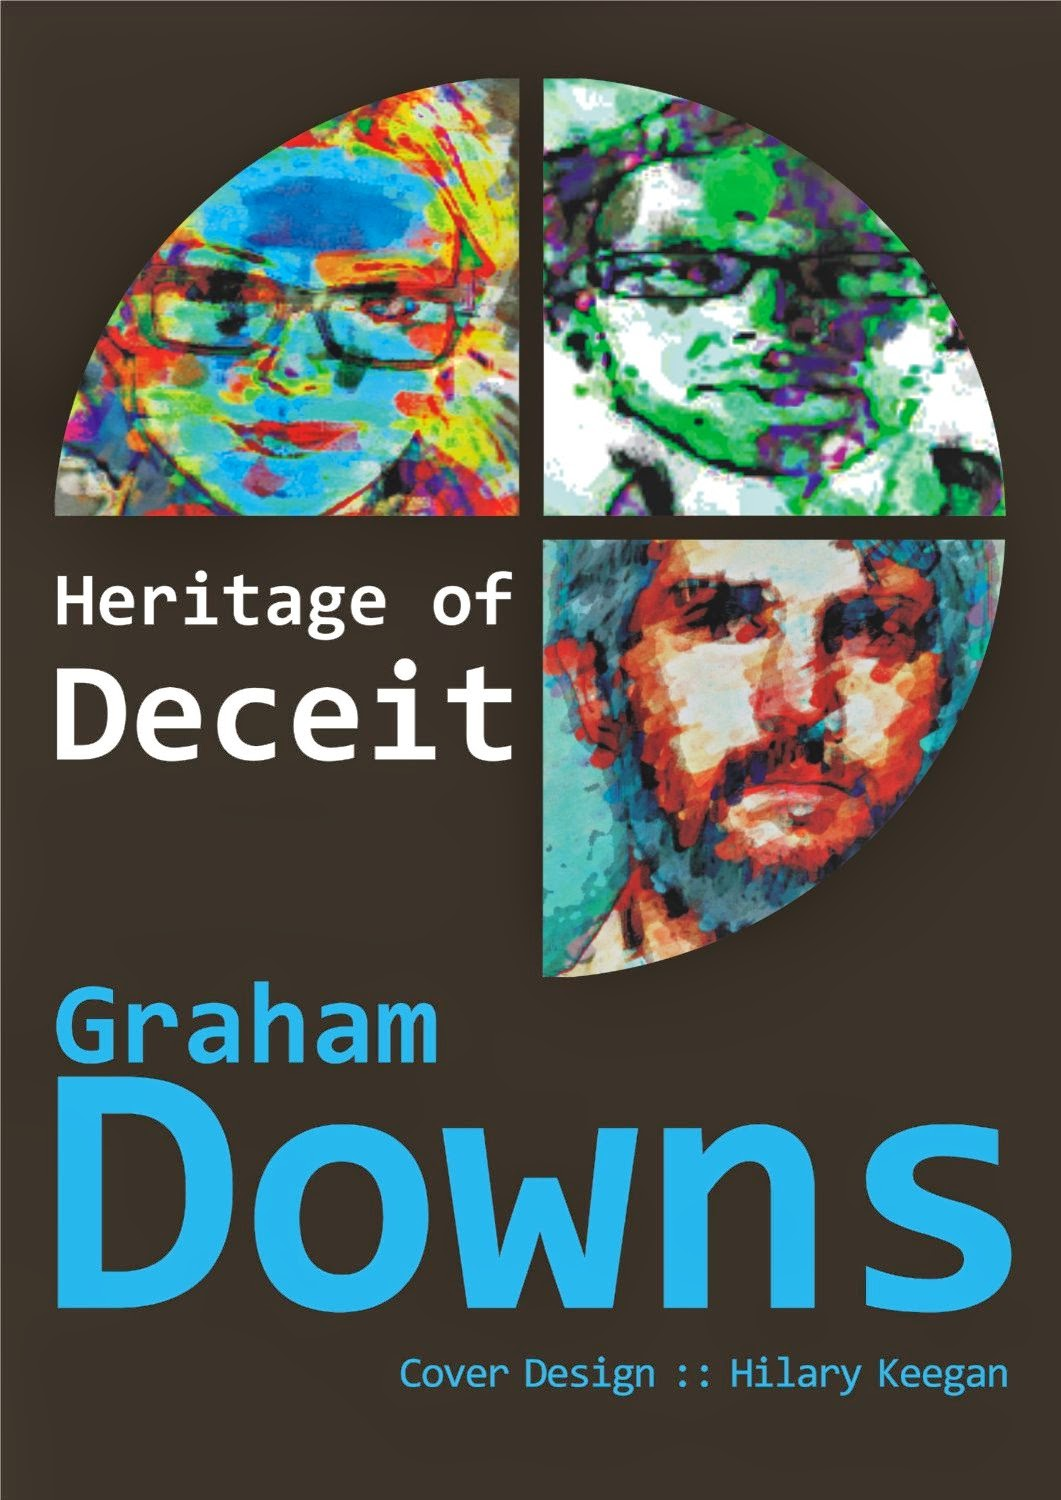 http://www.amazon.com/Heritage-Deceit-Graham-Downs-ebook/dp/B00H0V36R6/ref=sr_1_1?s=digital-text&ie=UTF8&qid=1393761465&sr=1-1&keywords=heritage+of+deceit